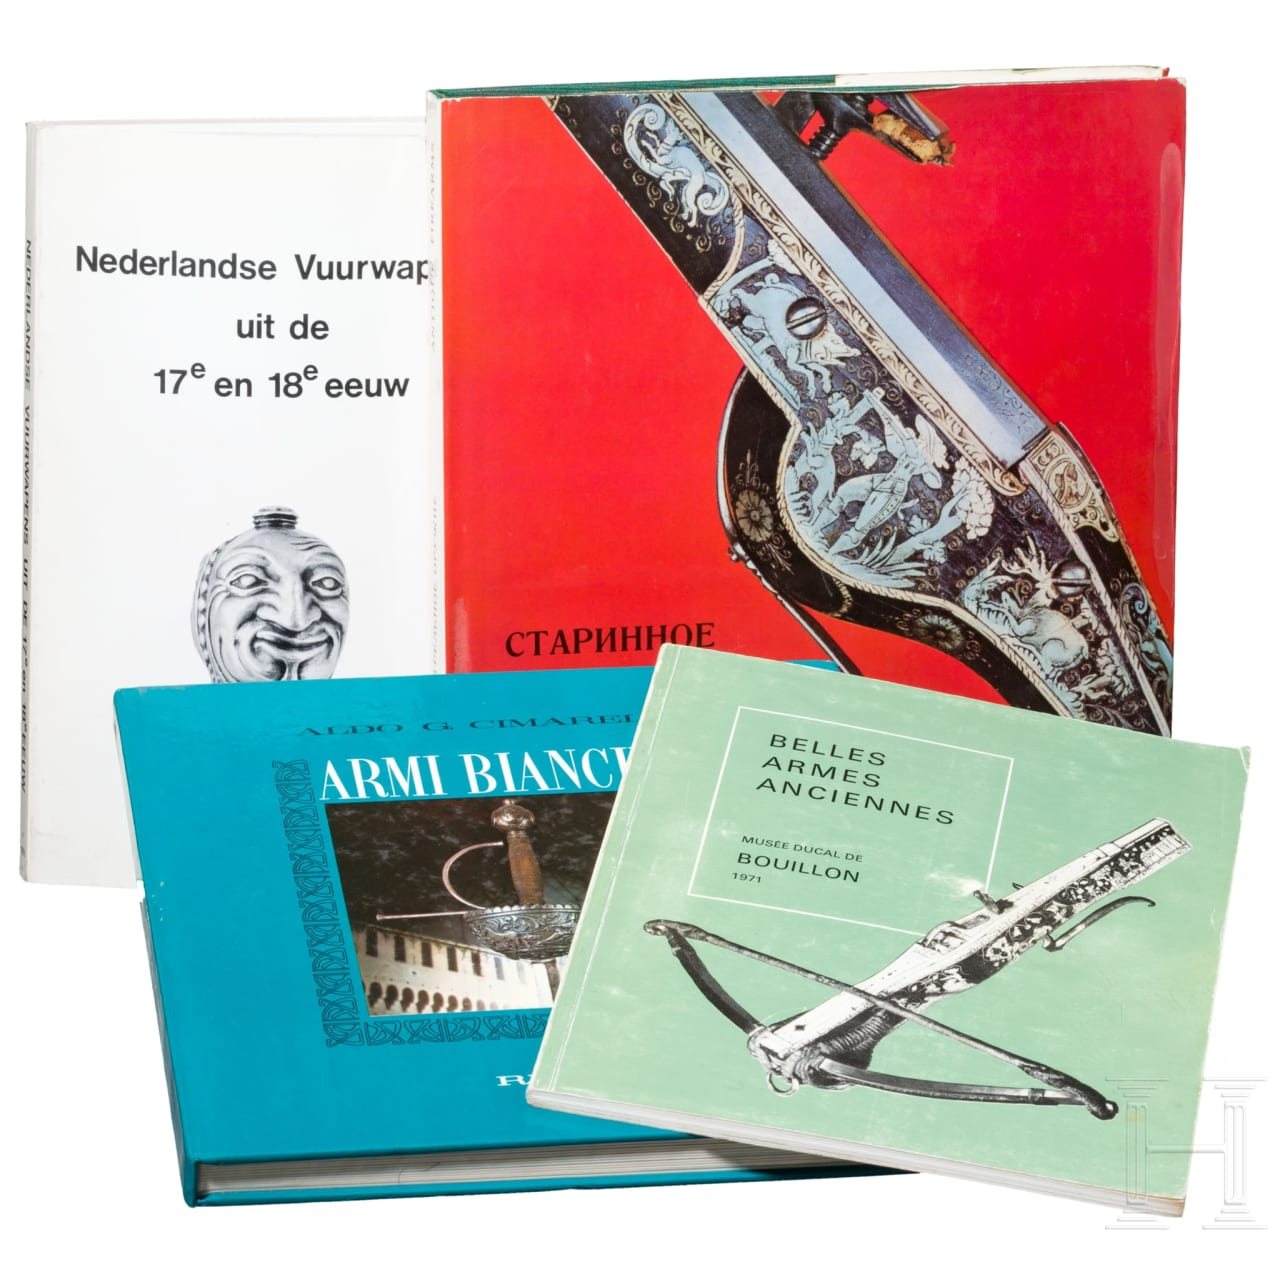 Four books on weapons in Italian, French, Russian and Dutch